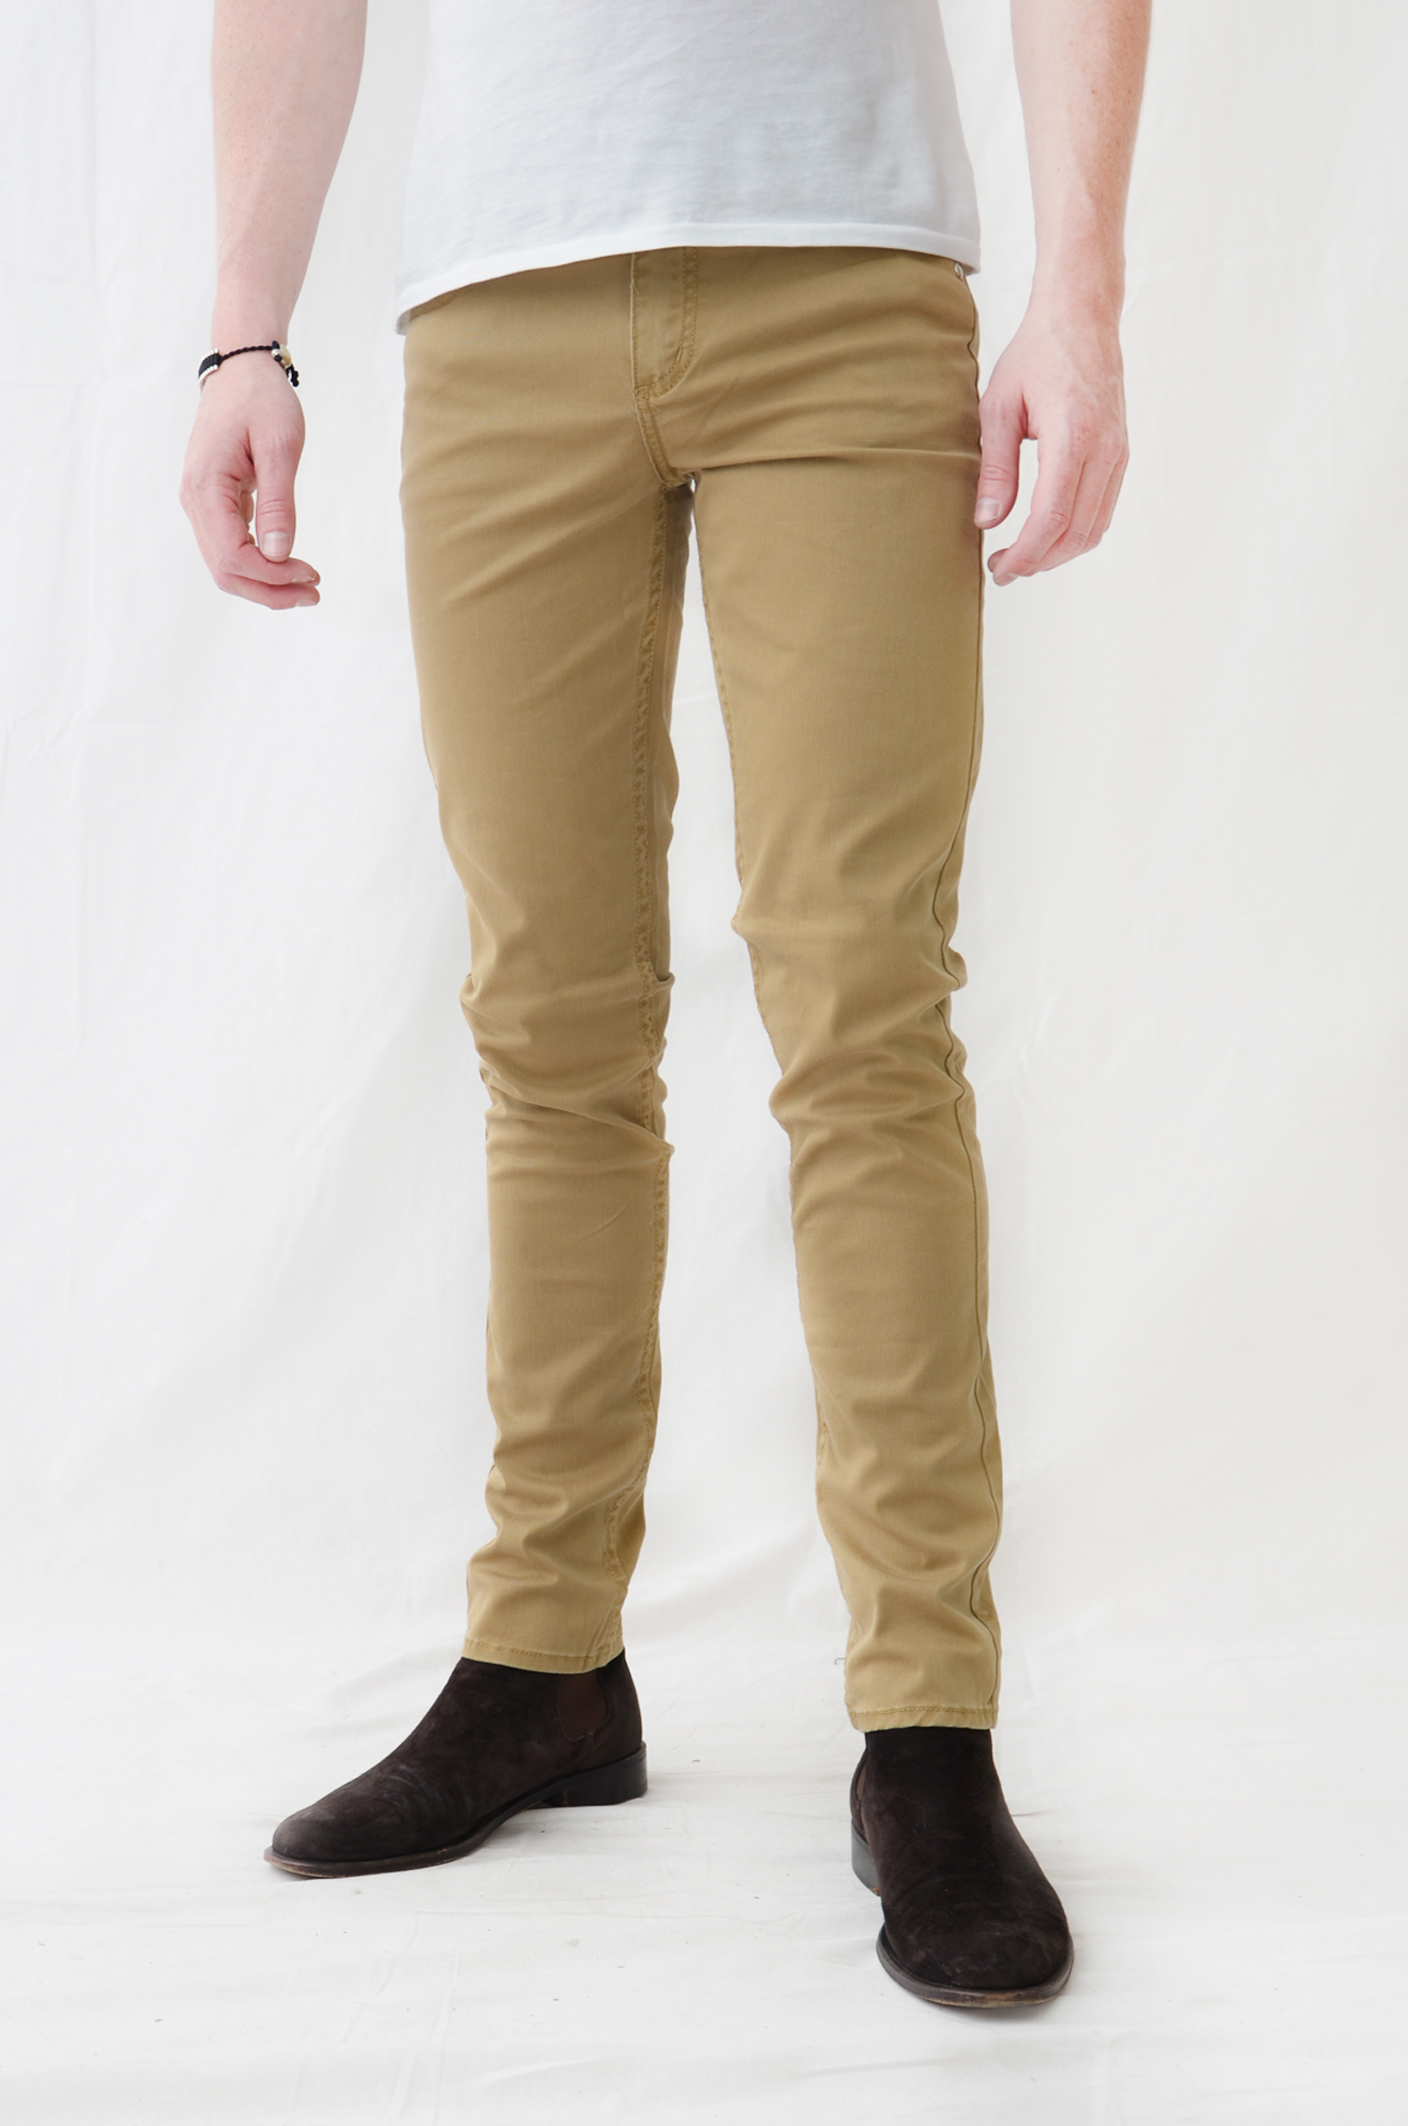 Mens khaki skinny jeans - results from brands Levi's, Dockers, blu, products like Alta Premium Designer Fashion Mens Slim Fit Skinny Denim Jeans - Multiple Styles, Dockers R) Relaxed Comfort Pleated Pants - Black 36x32, Black, Dockers R) Relaxed Fit Comfort Pants - Black 32x30, Black, Men's Pants.